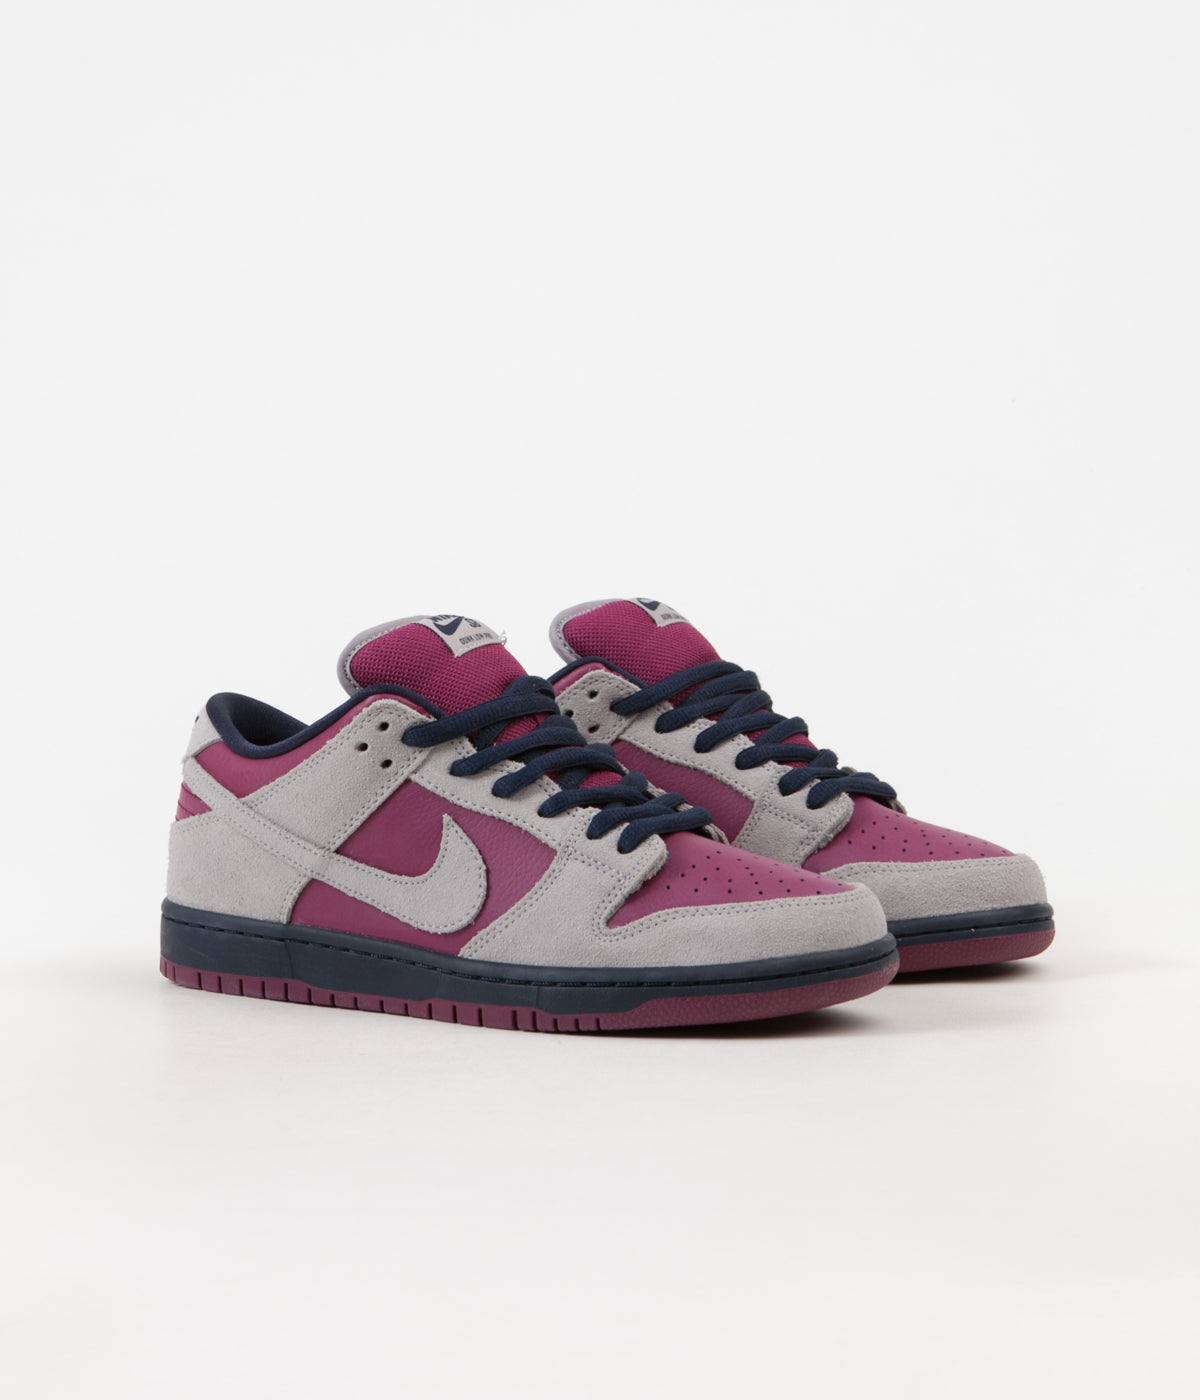 Nike SB Dunk Low Pro Shoes - Atmosphere Grey / Atmosphere Grey